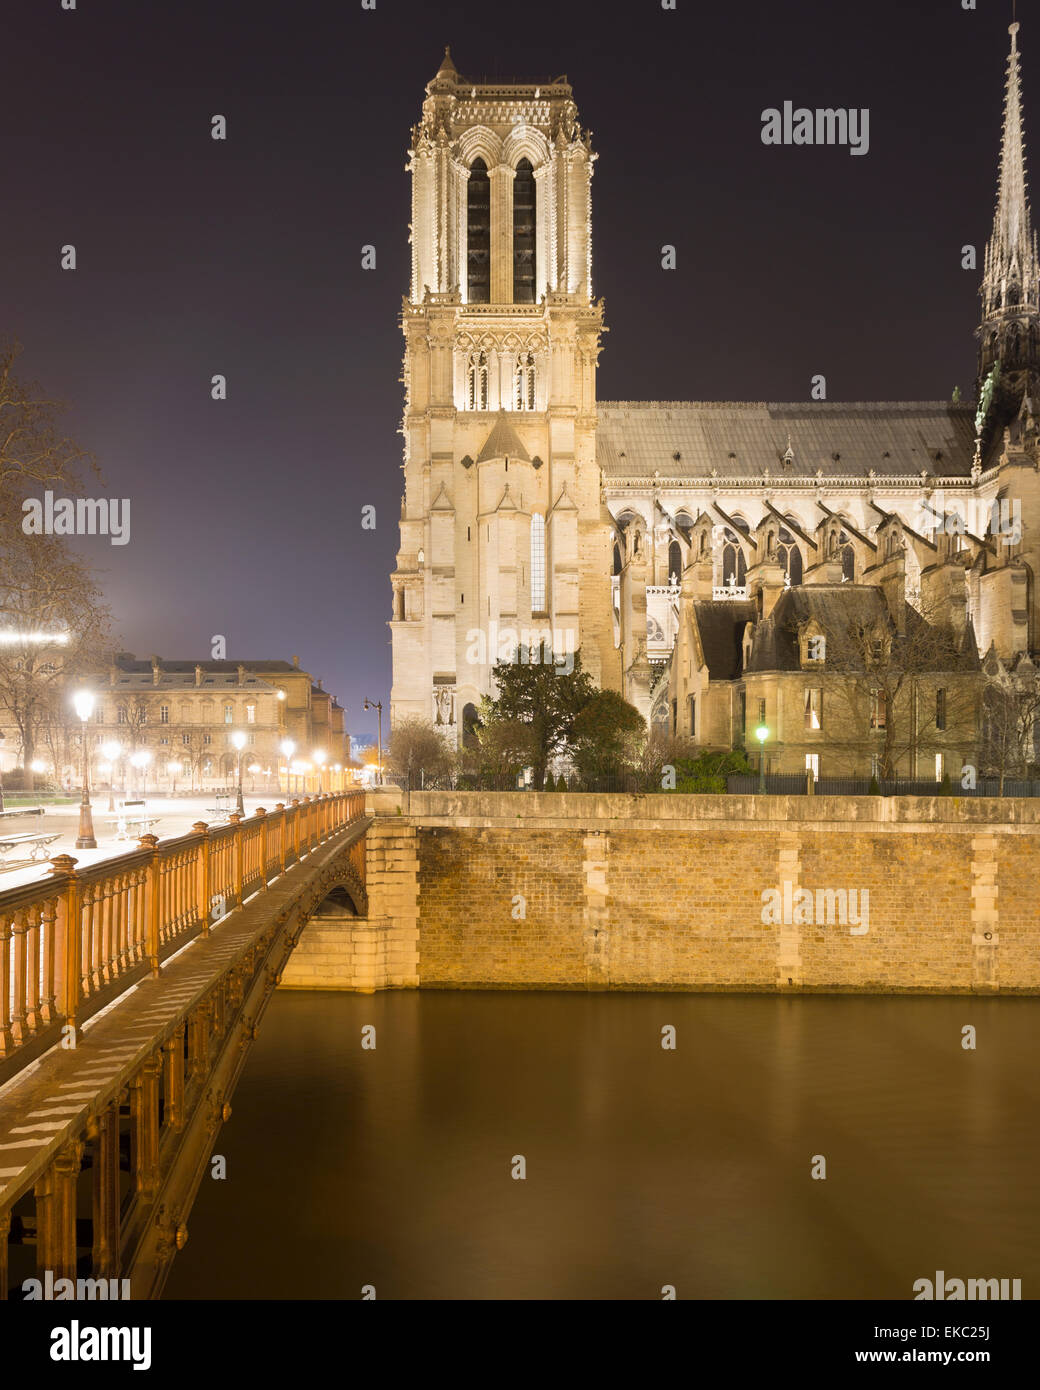 View of Notre Dame Cathedral and Pont au Double at night, Paris, France Stock Photo